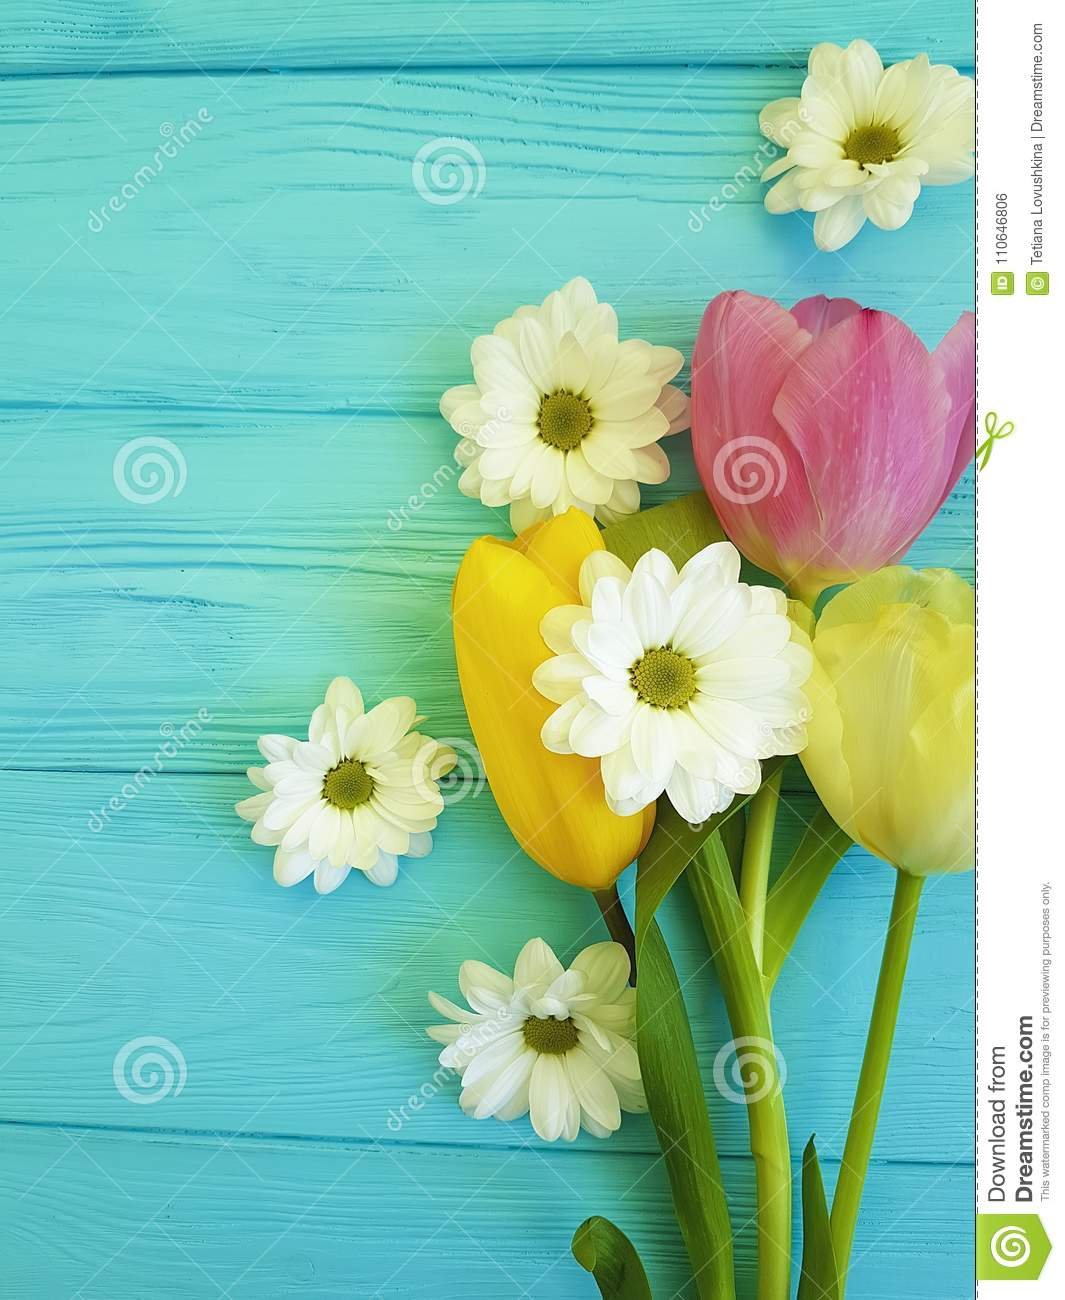 Beautiful tulips of chrysanthemum march bloom celebration season background greeting mothers day , on a blue wooden background